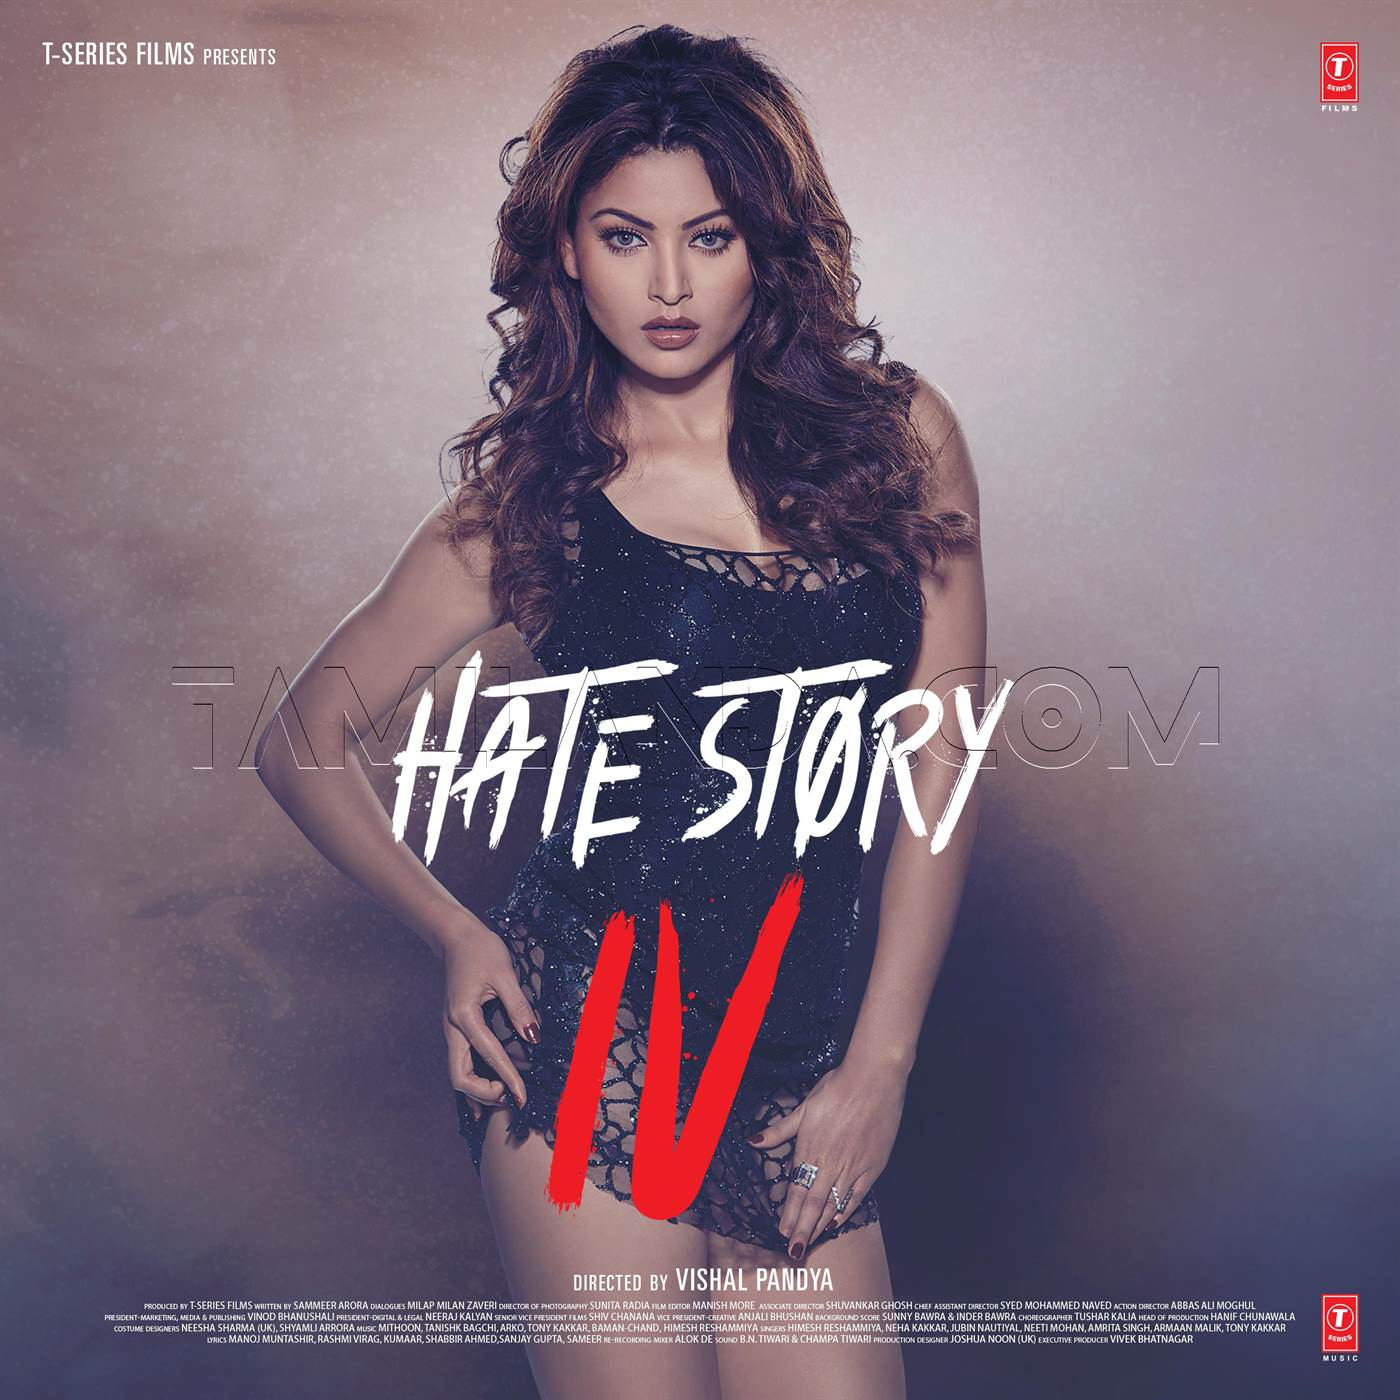 Hate Story IV FLAC/WAV Songs